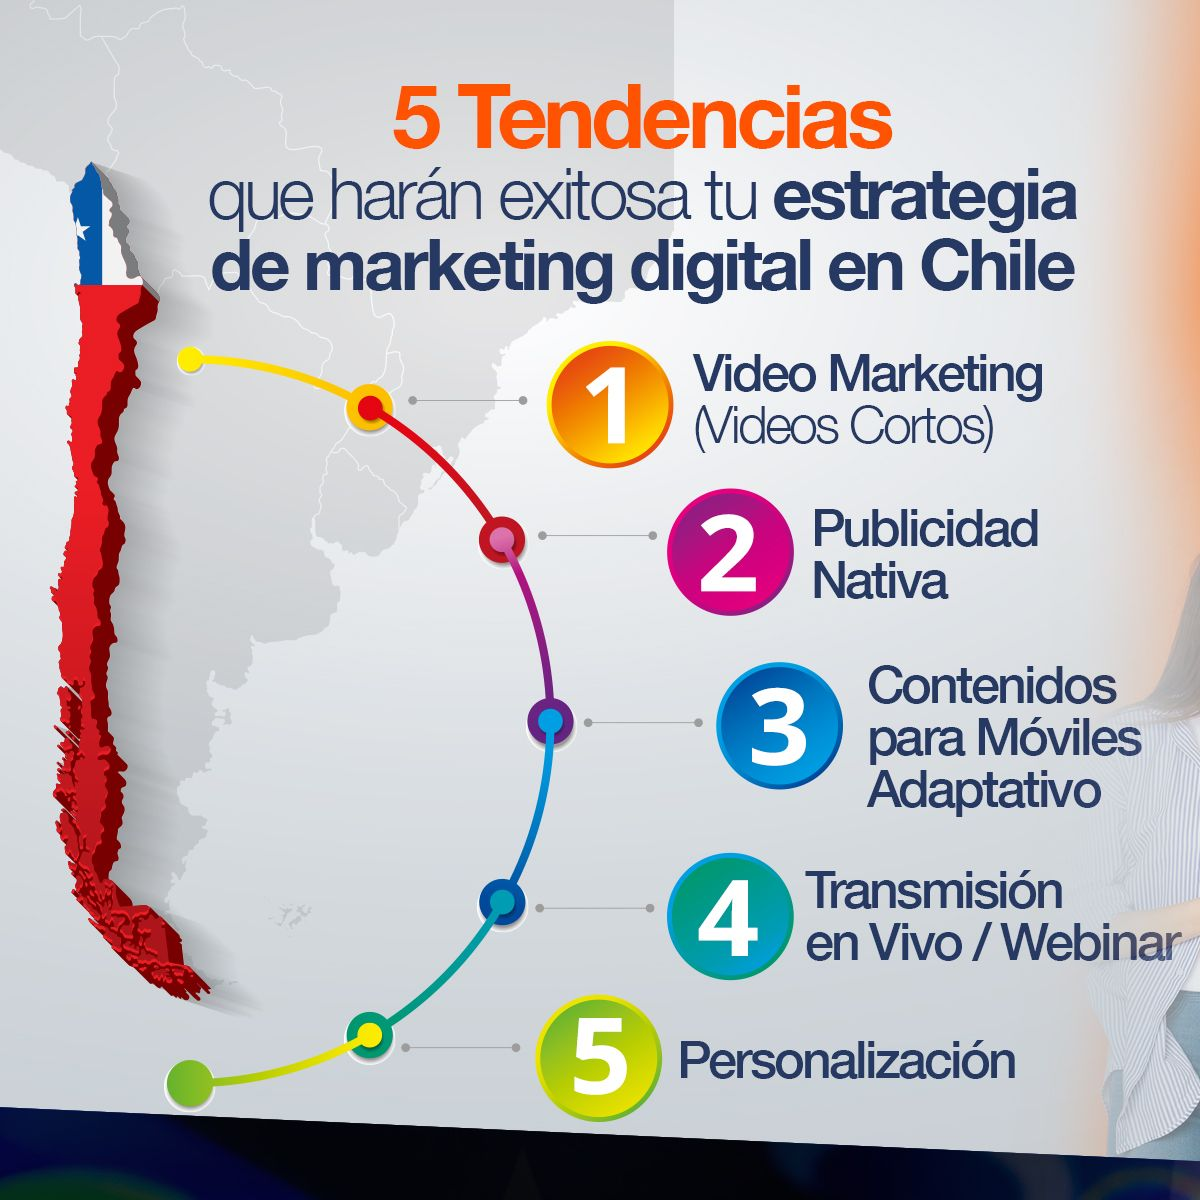 5 Tendencias que harán exitosa tu estrategia de marketing digital en Chile